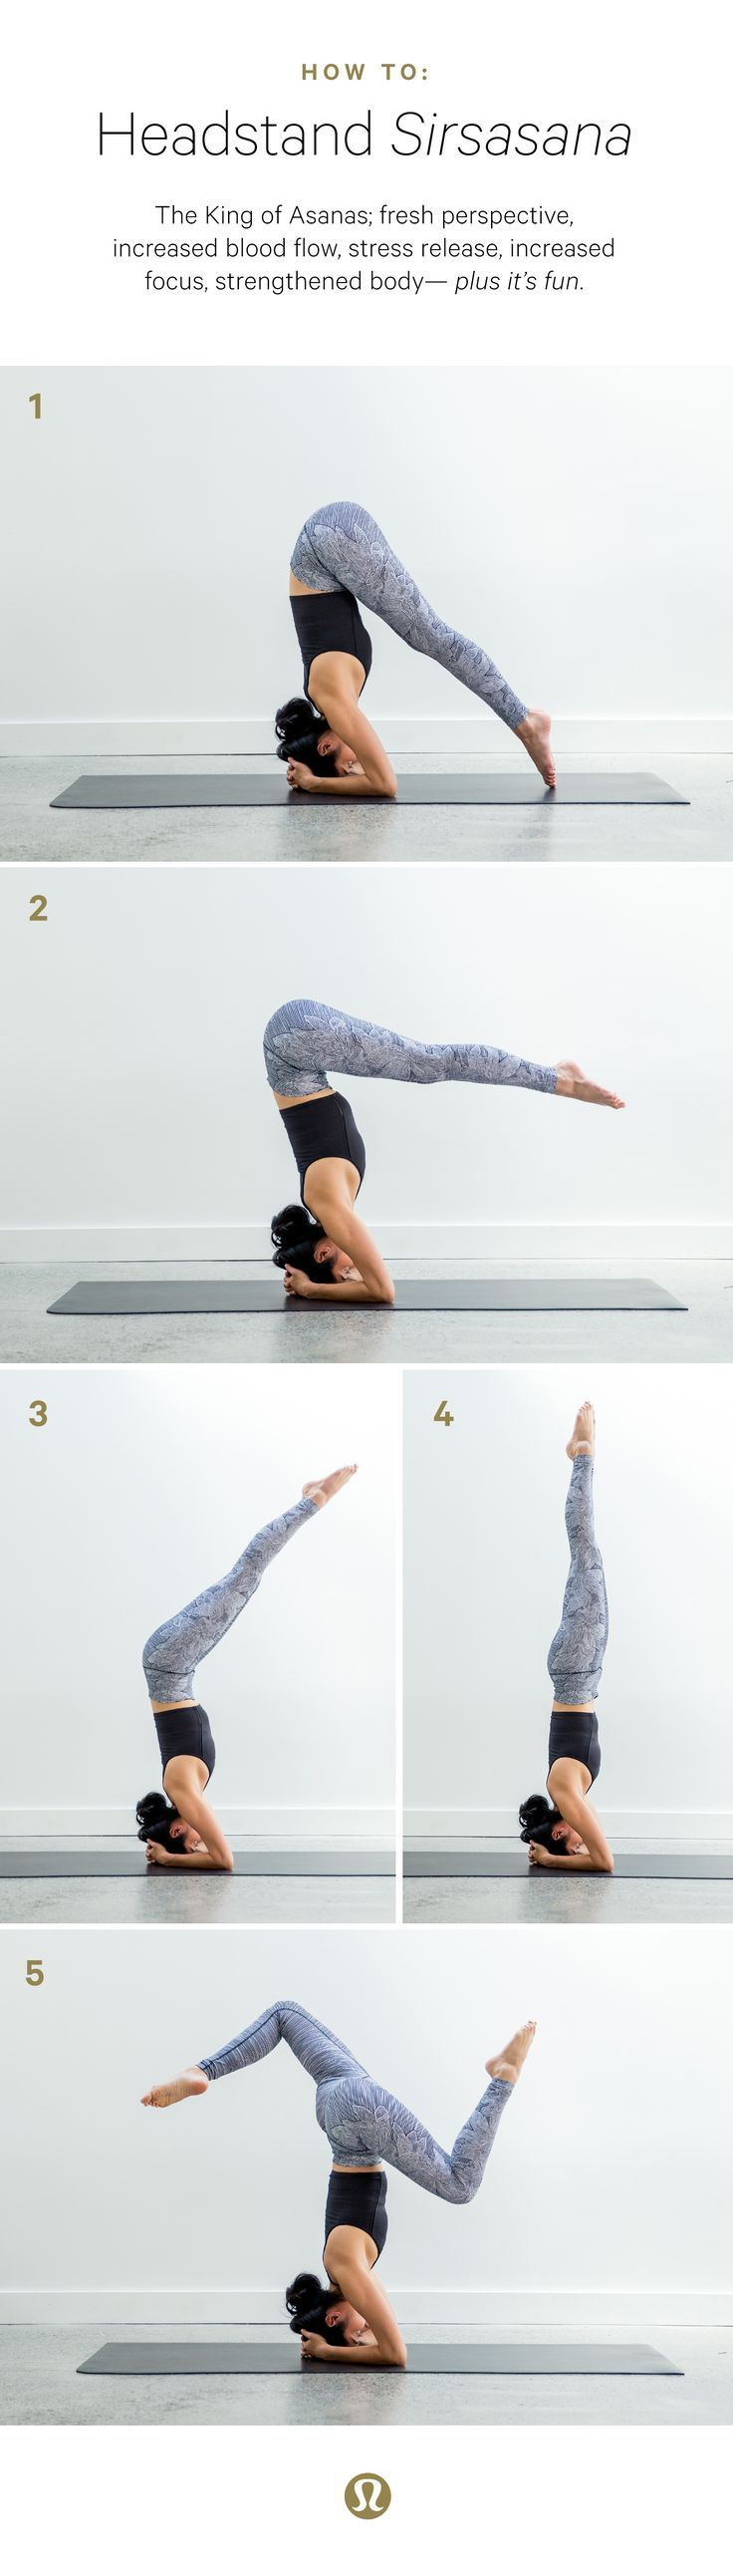 How to headstand (sirsasana). Step one: head to a local yoga class to get in per...